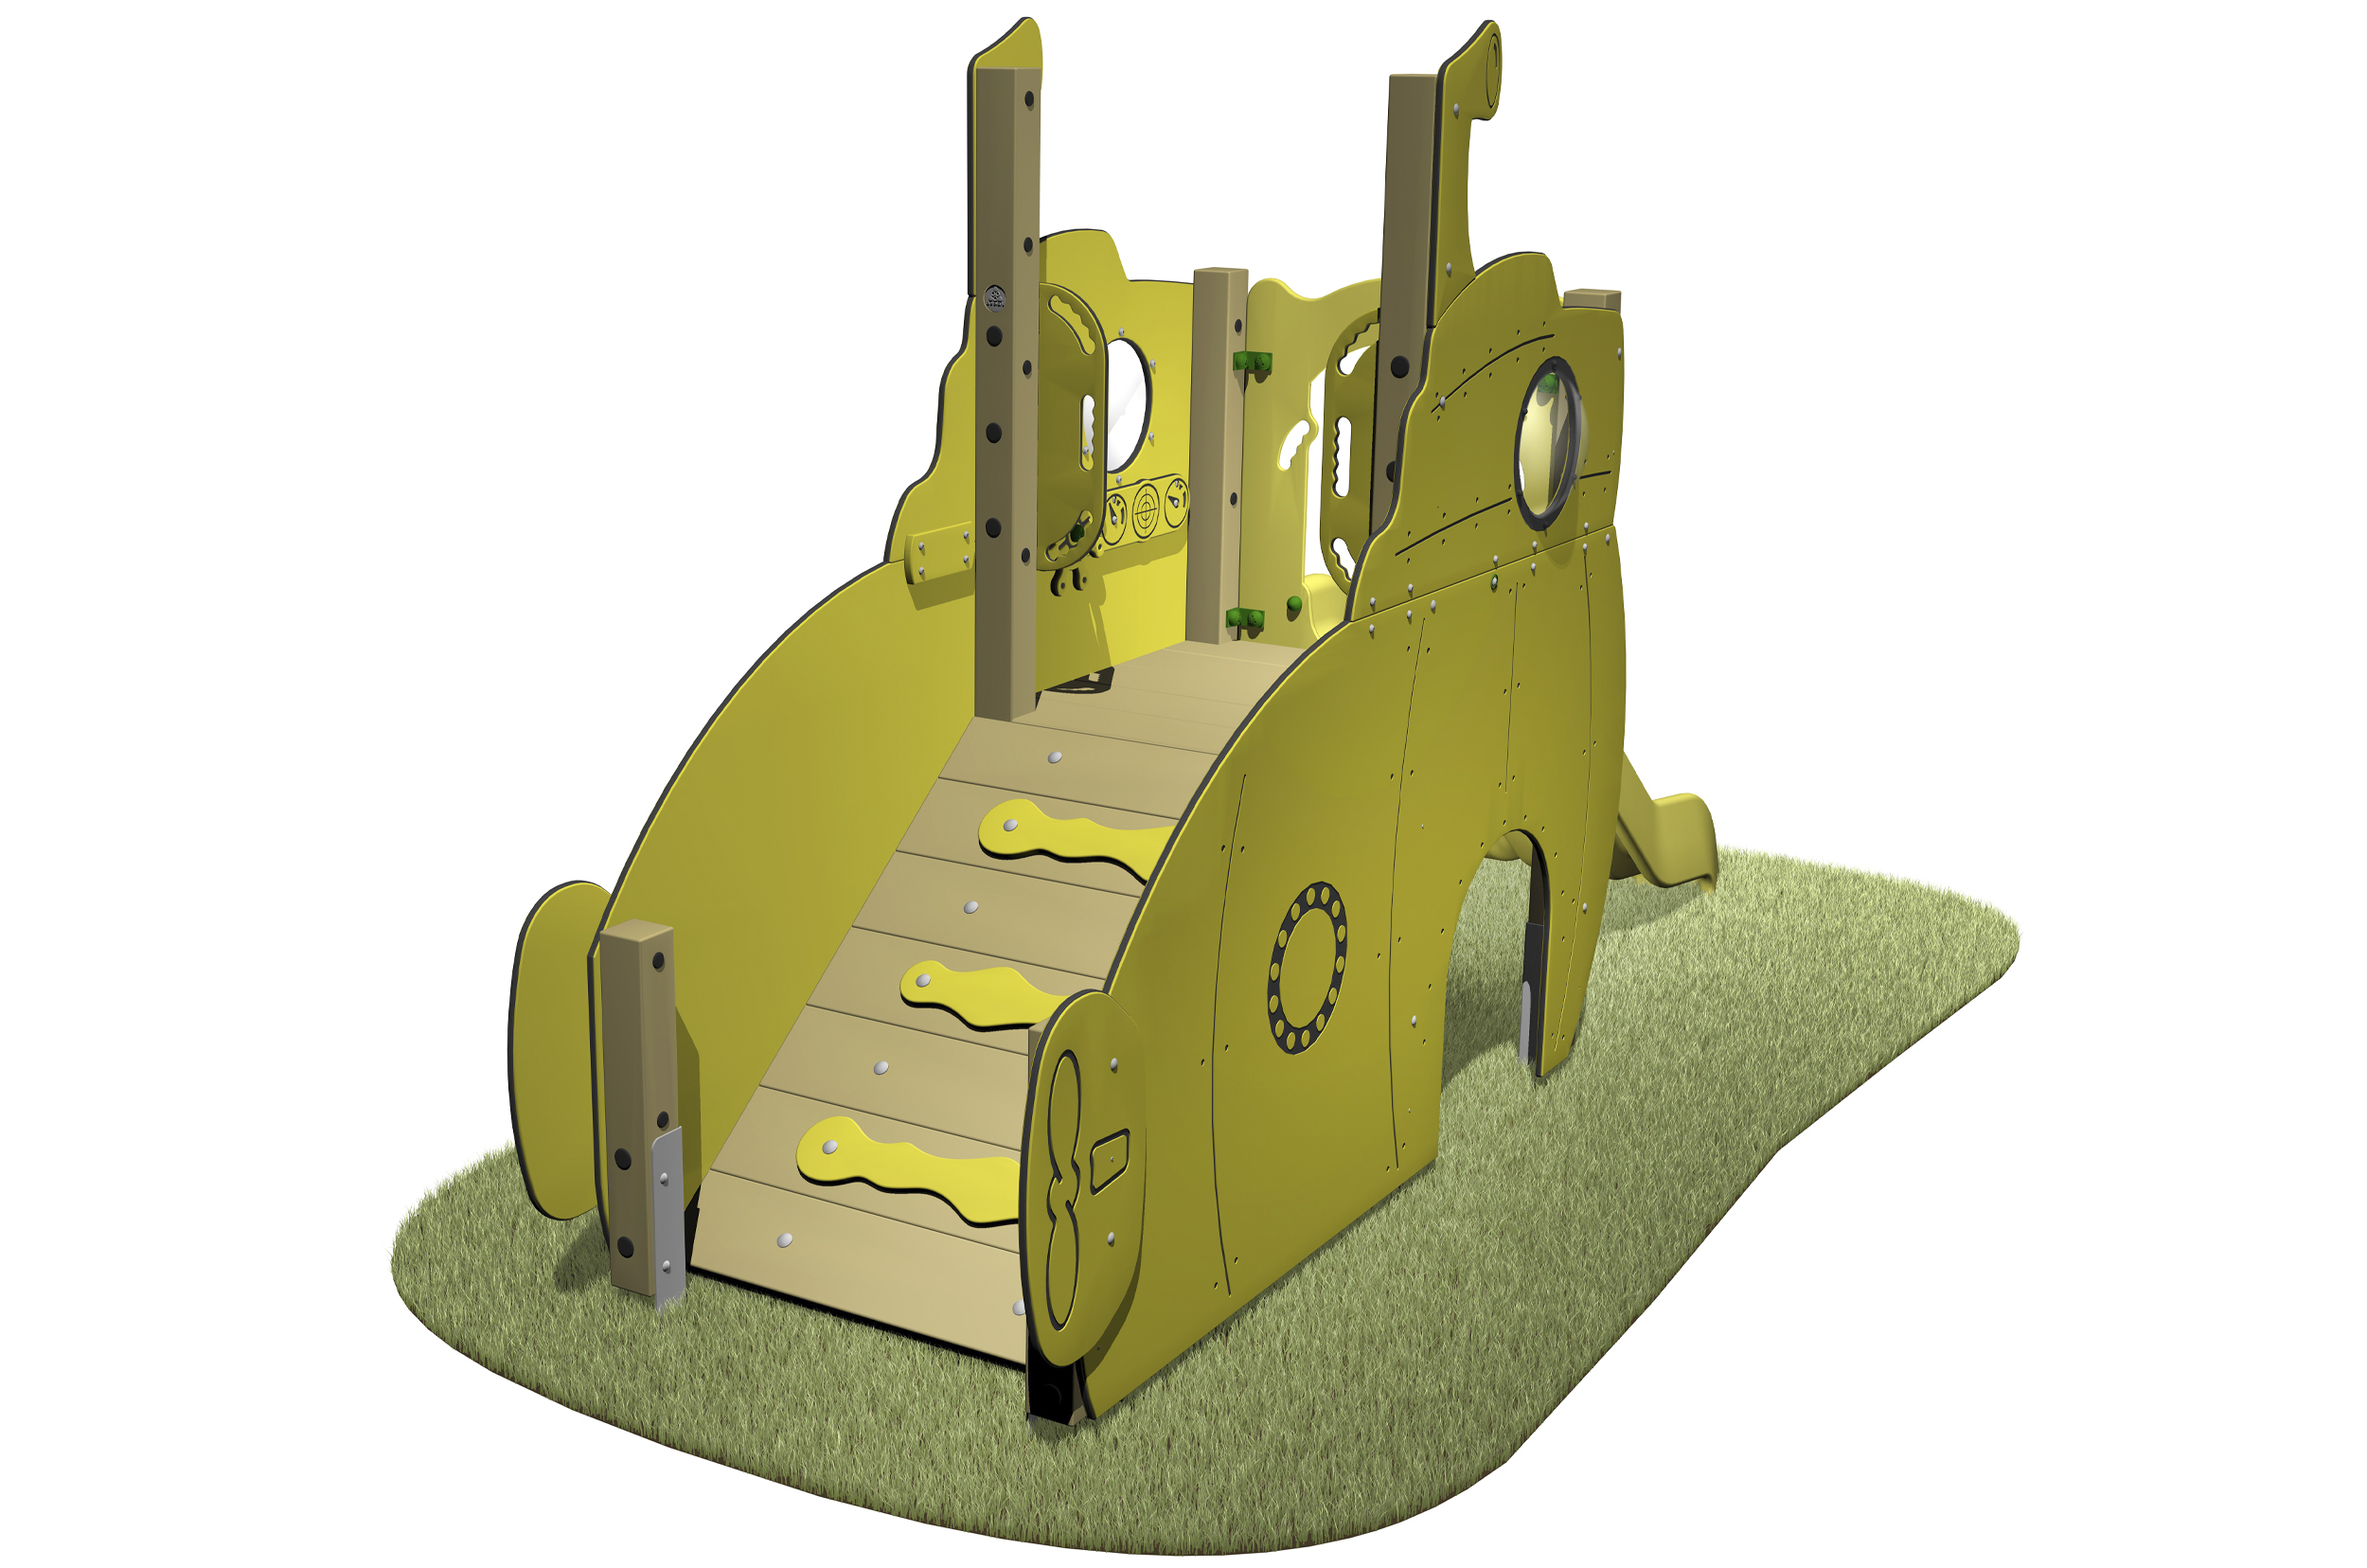 Submarine Slide with themed slides, portholes, periscope access ramp and yellow slide